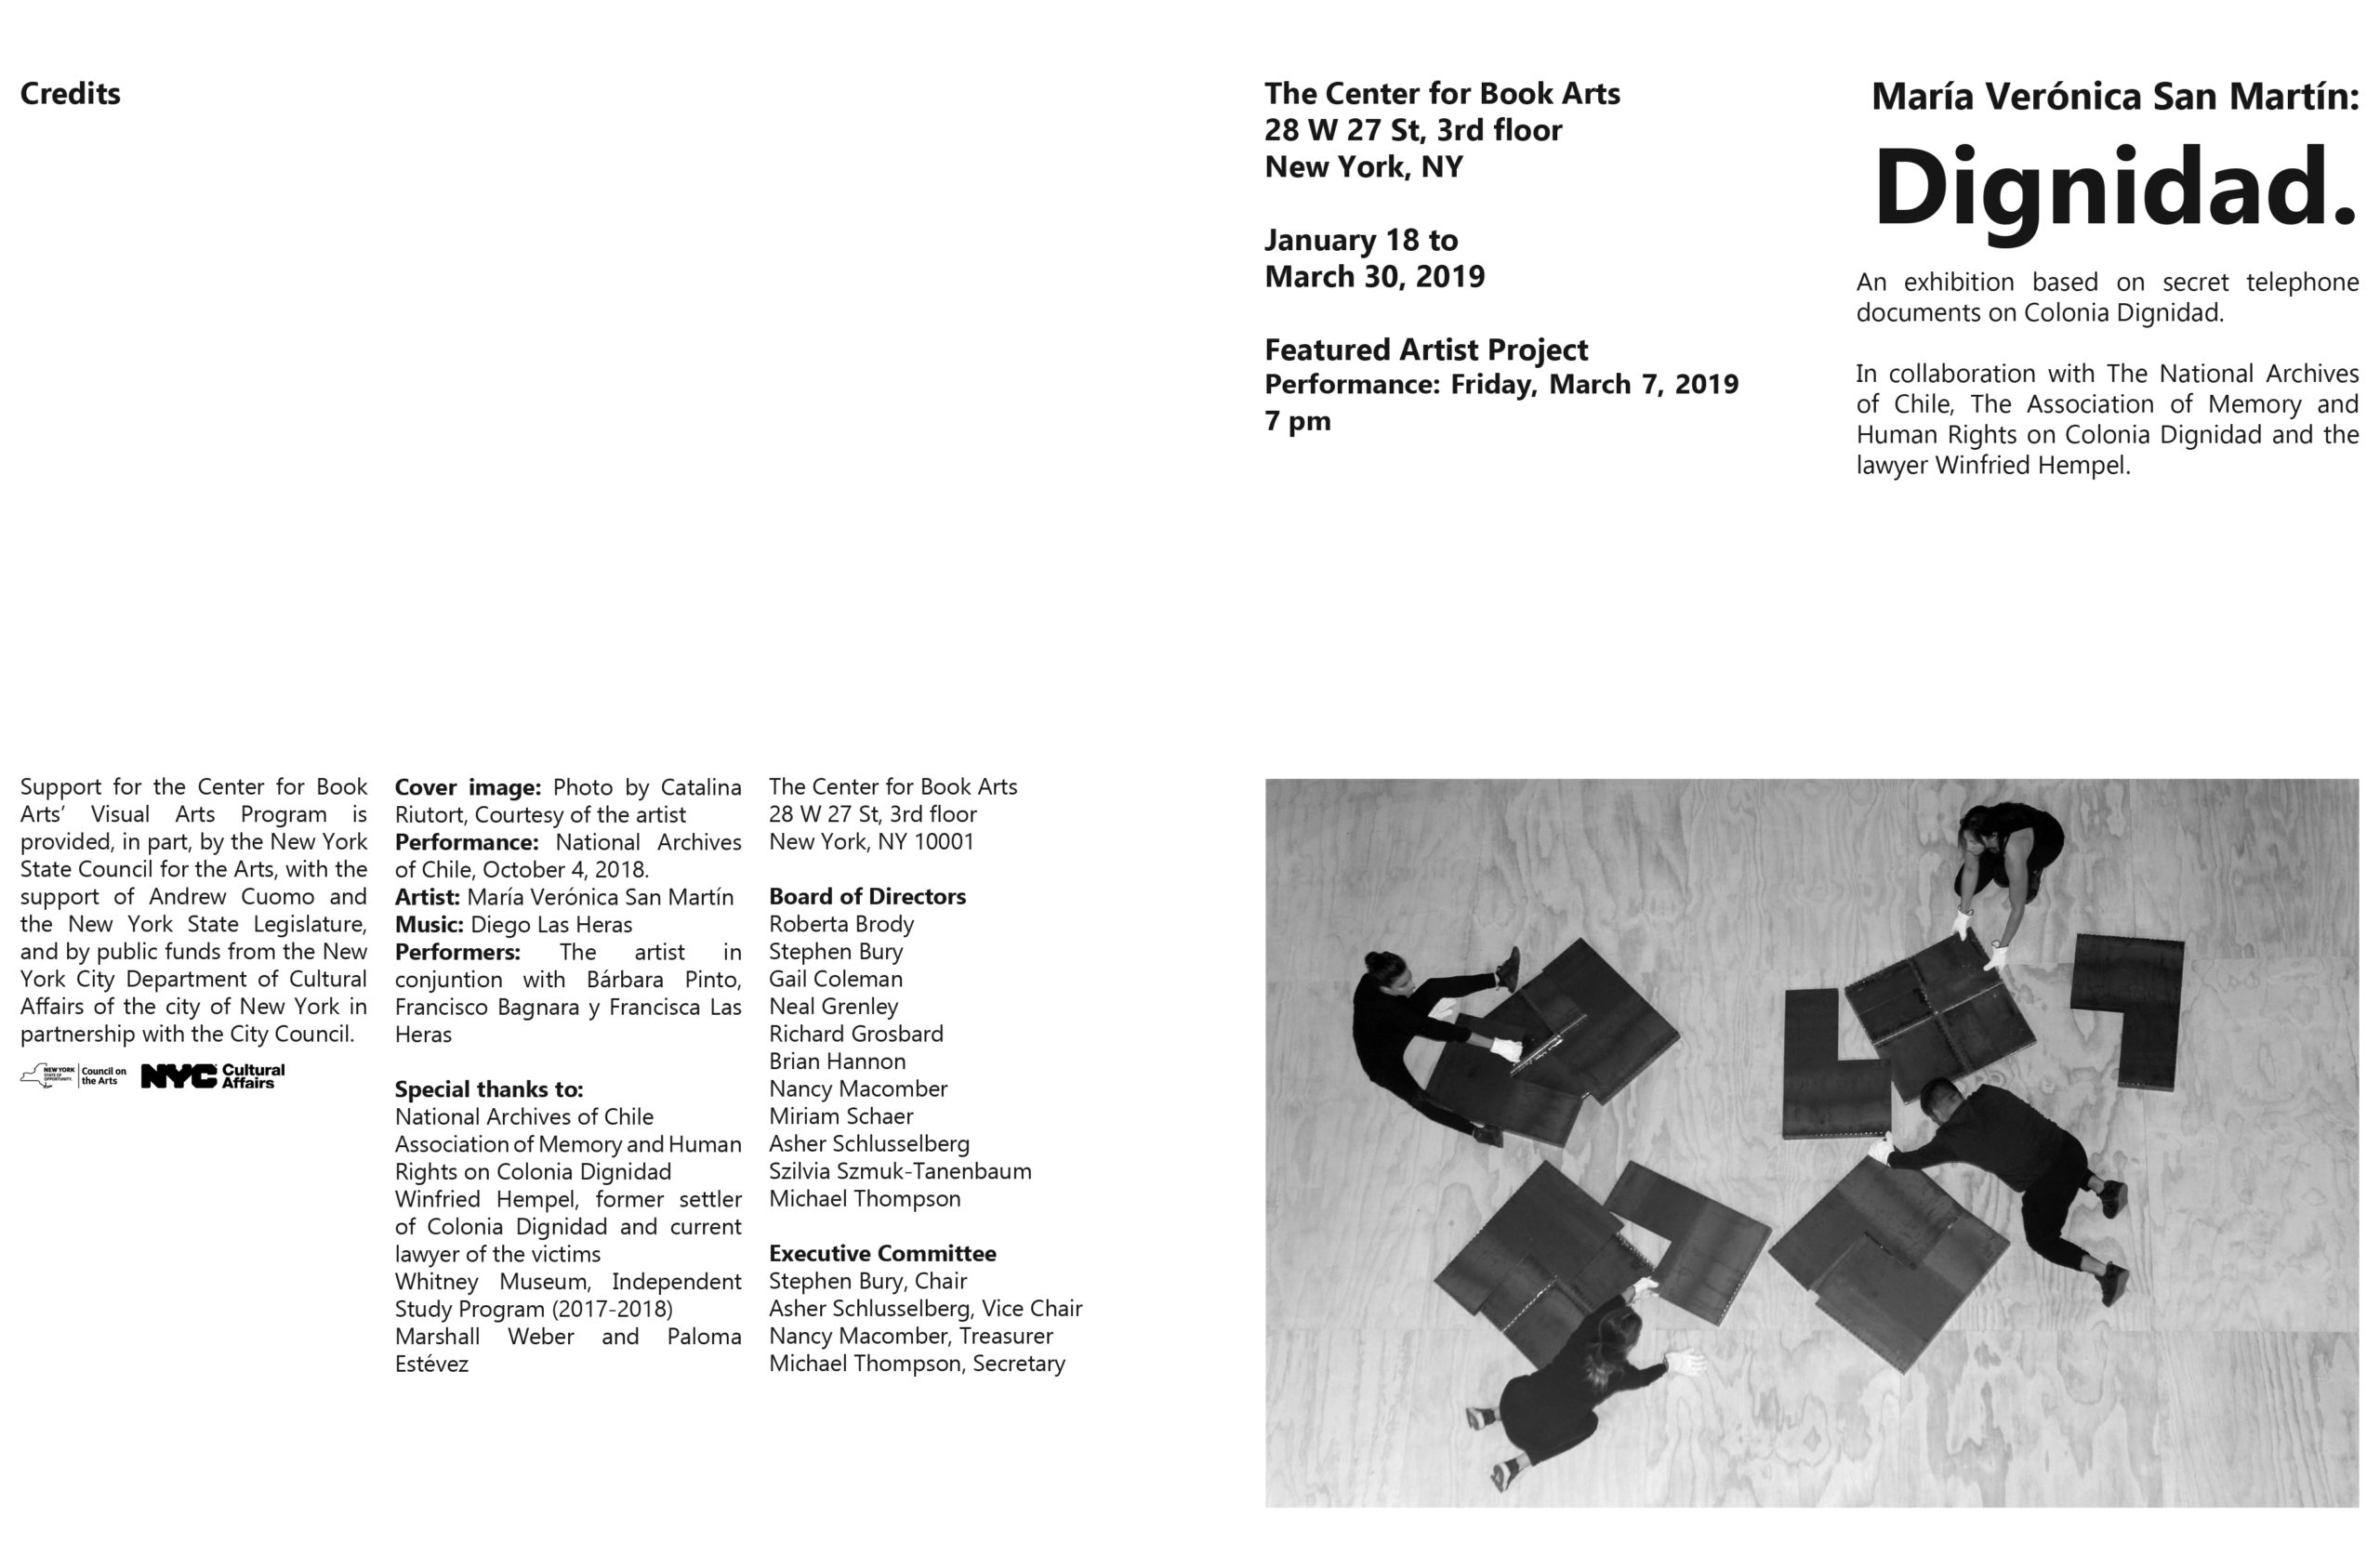 brochure spread with image of performance